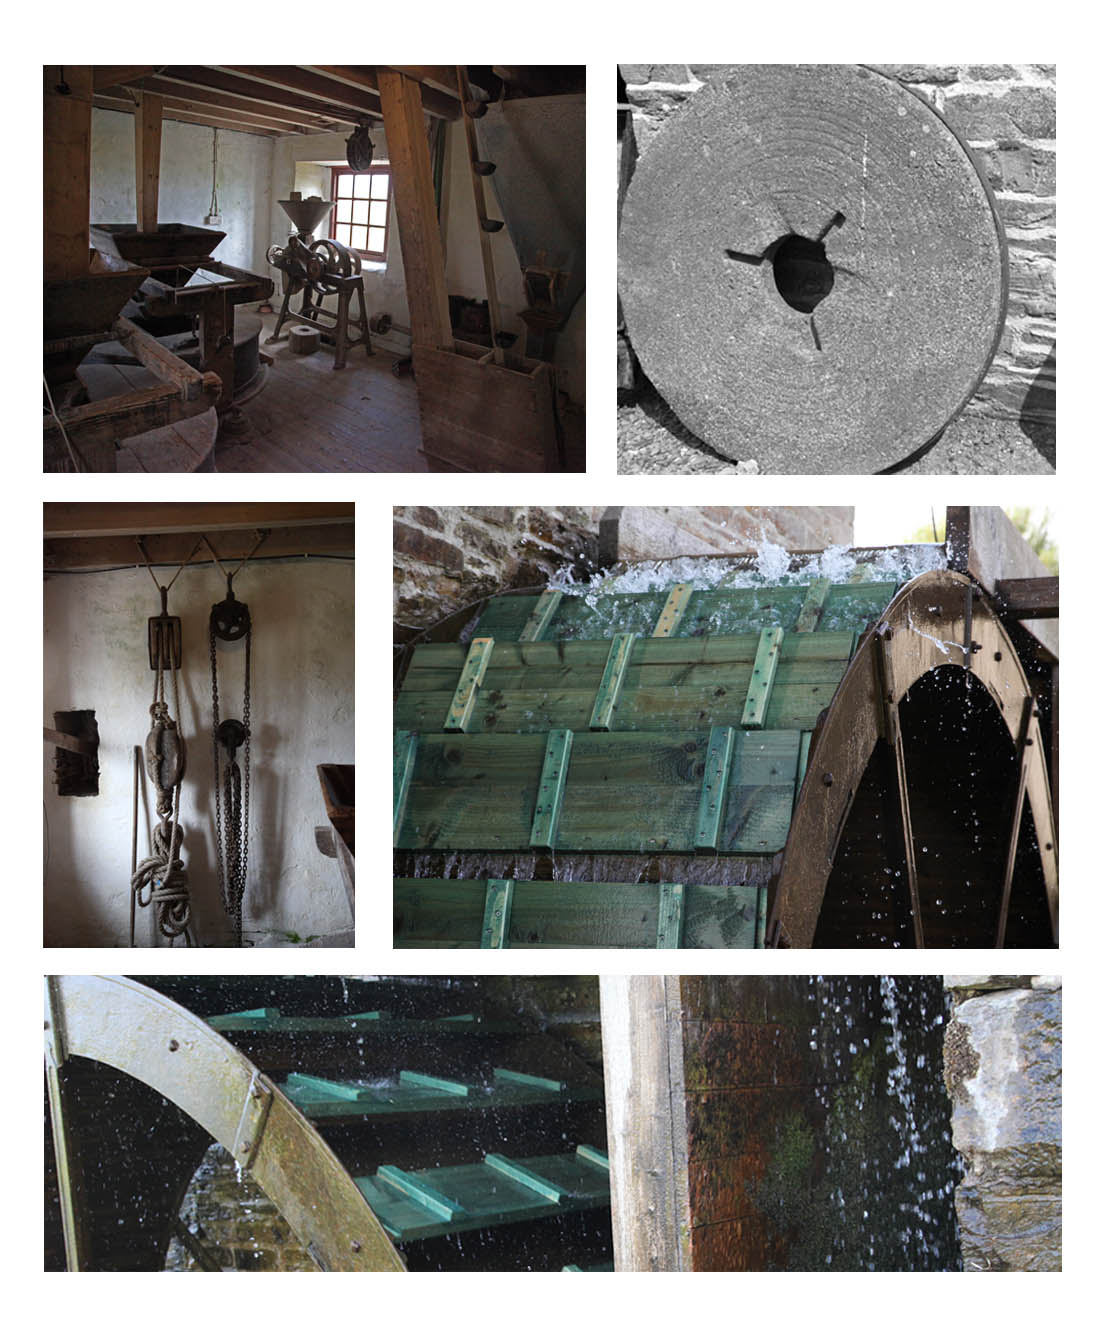 Barony Mills, Birsay Orkney, showing interior, old grinding wheel, tackle, water wheel with new wooden paddles (Squire)